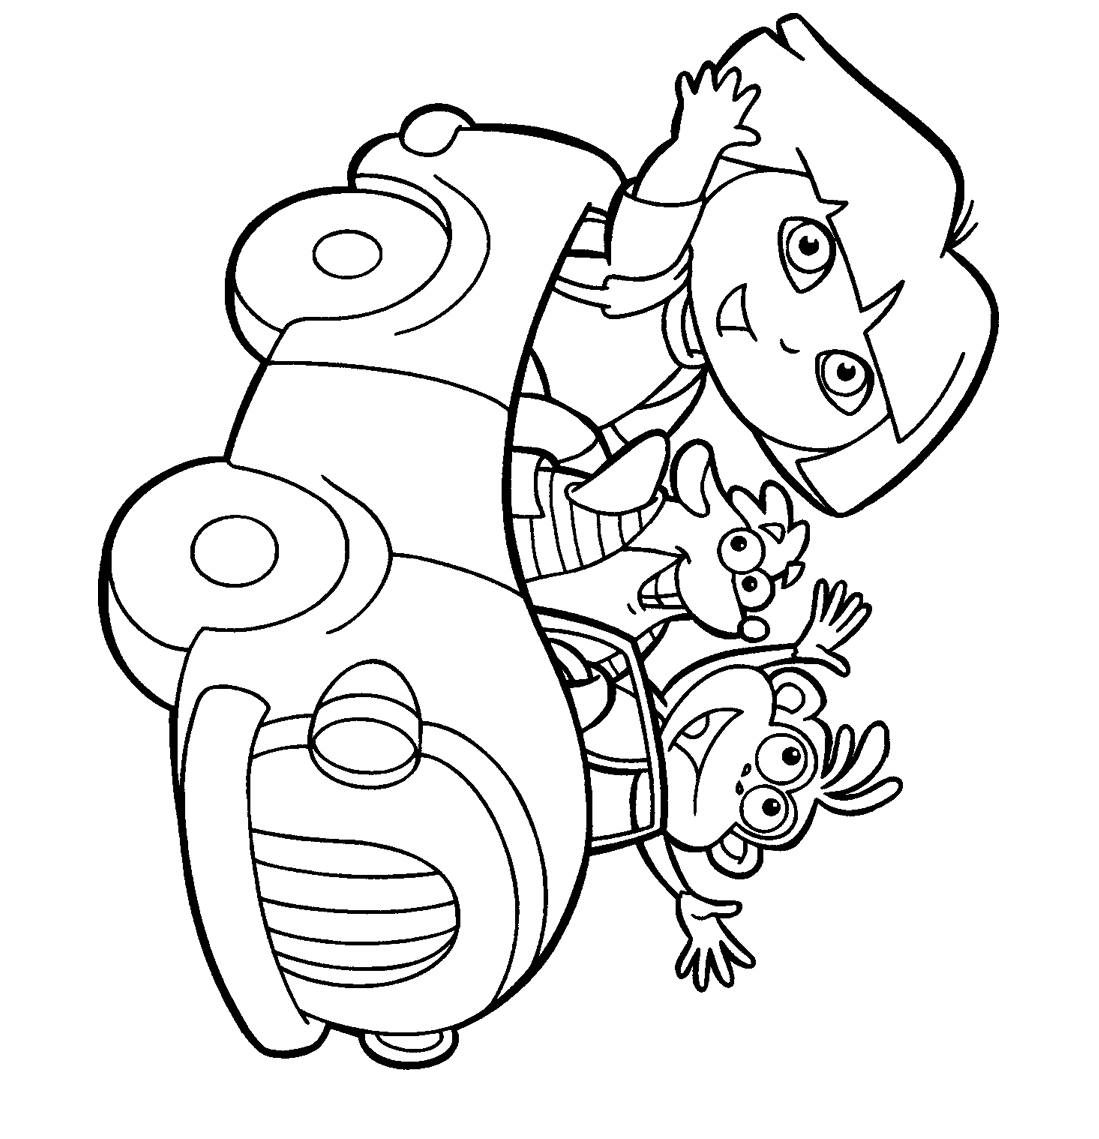 dora colouring pictures coloring blog for kids january 2011 colouring dora pictures